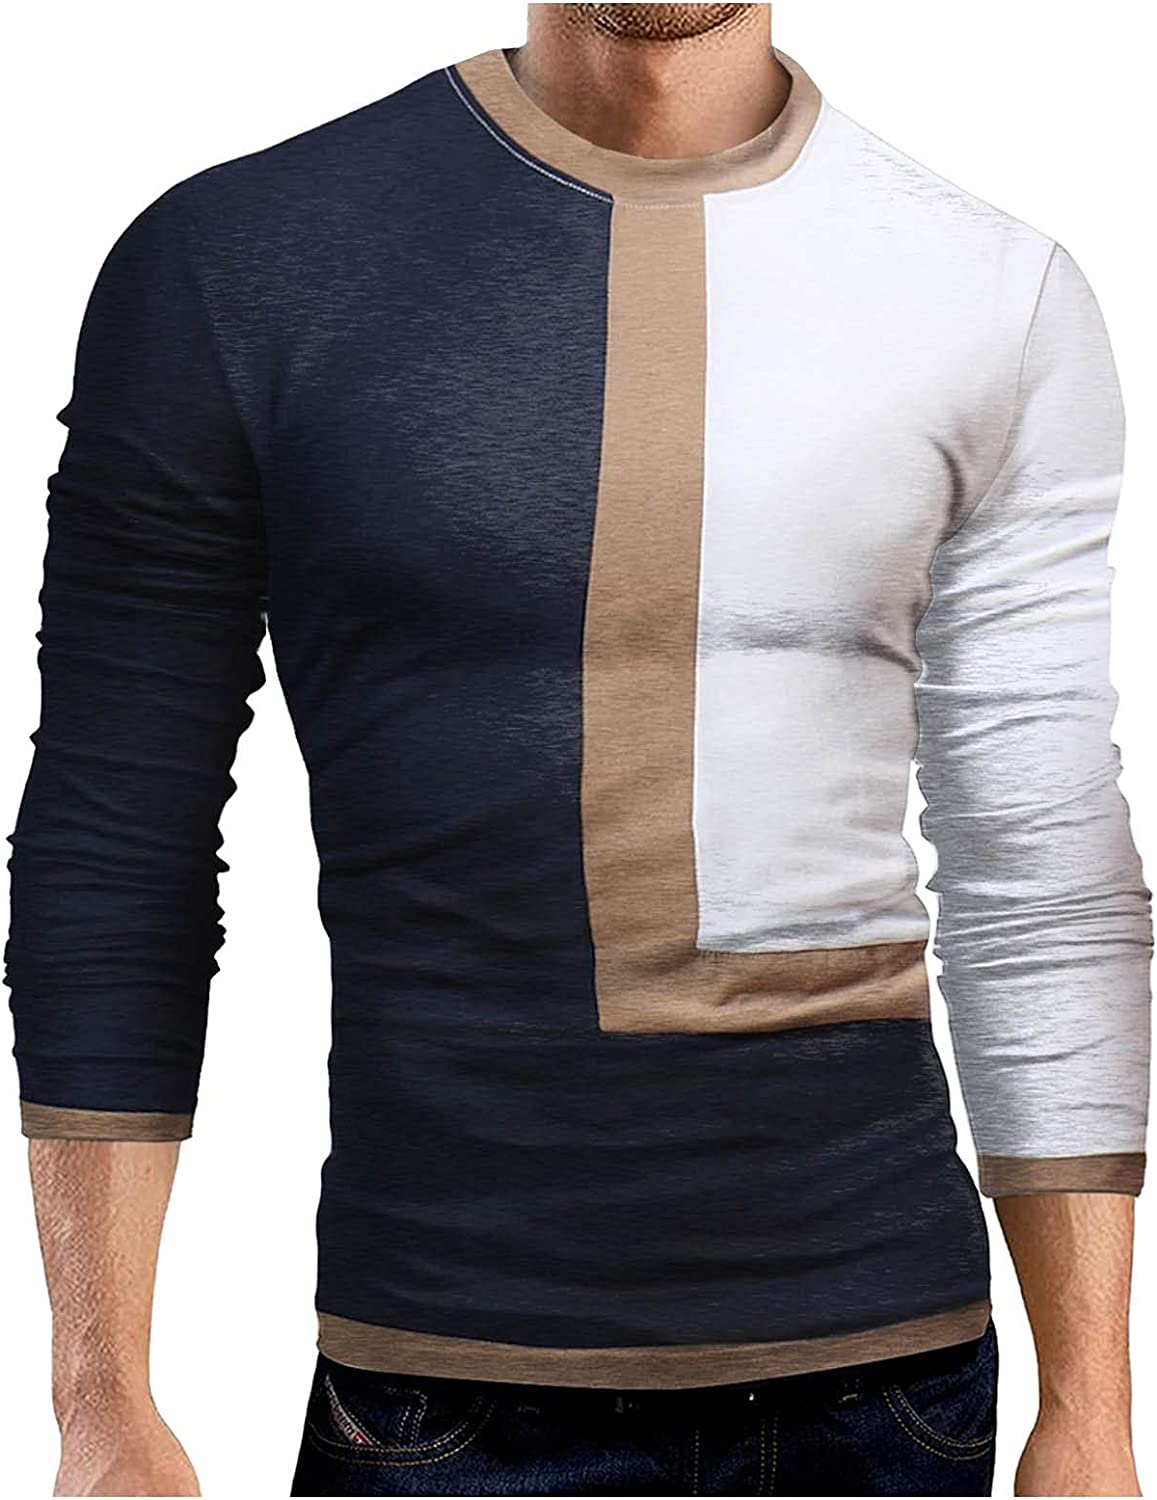 Huangse Men's UPF 50+ Sun Protection SPF Long Sleeve Shirts Color Block O Neck Quick Dry Lightweight Running T-Shirts